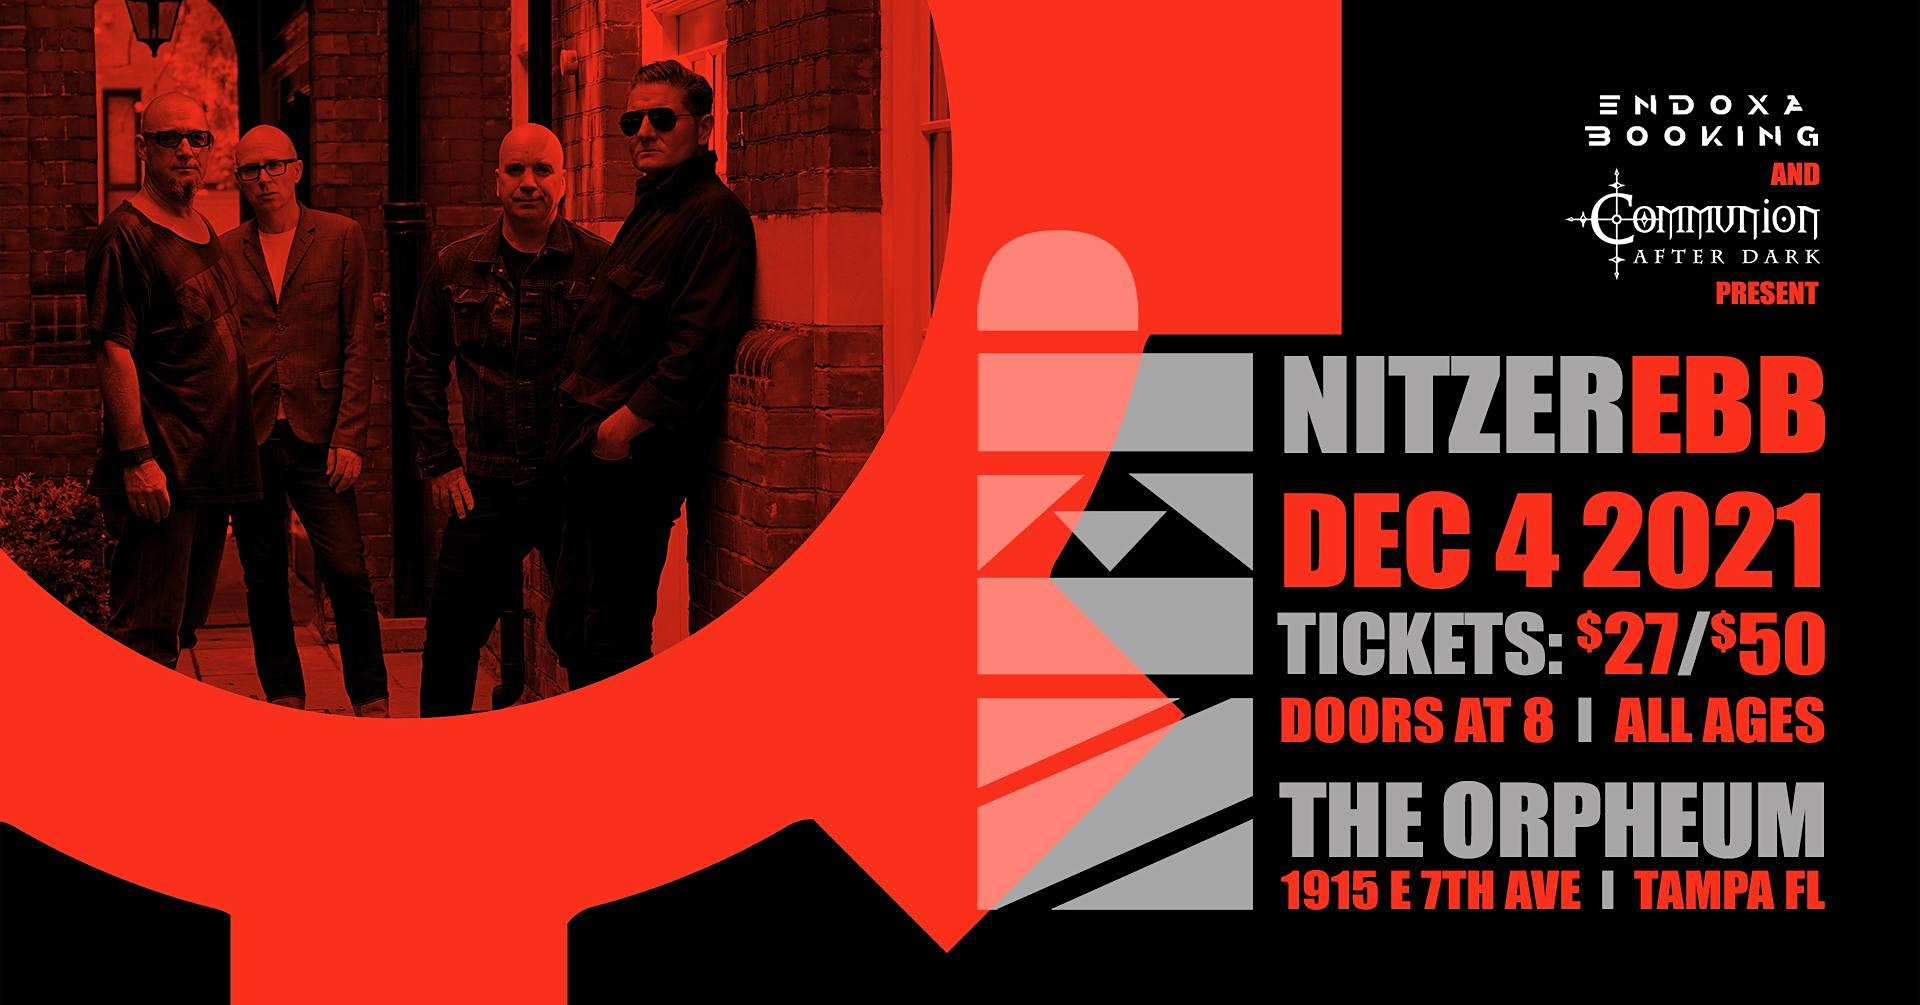 Nitzer Ebb in Tampa at the Orpheum